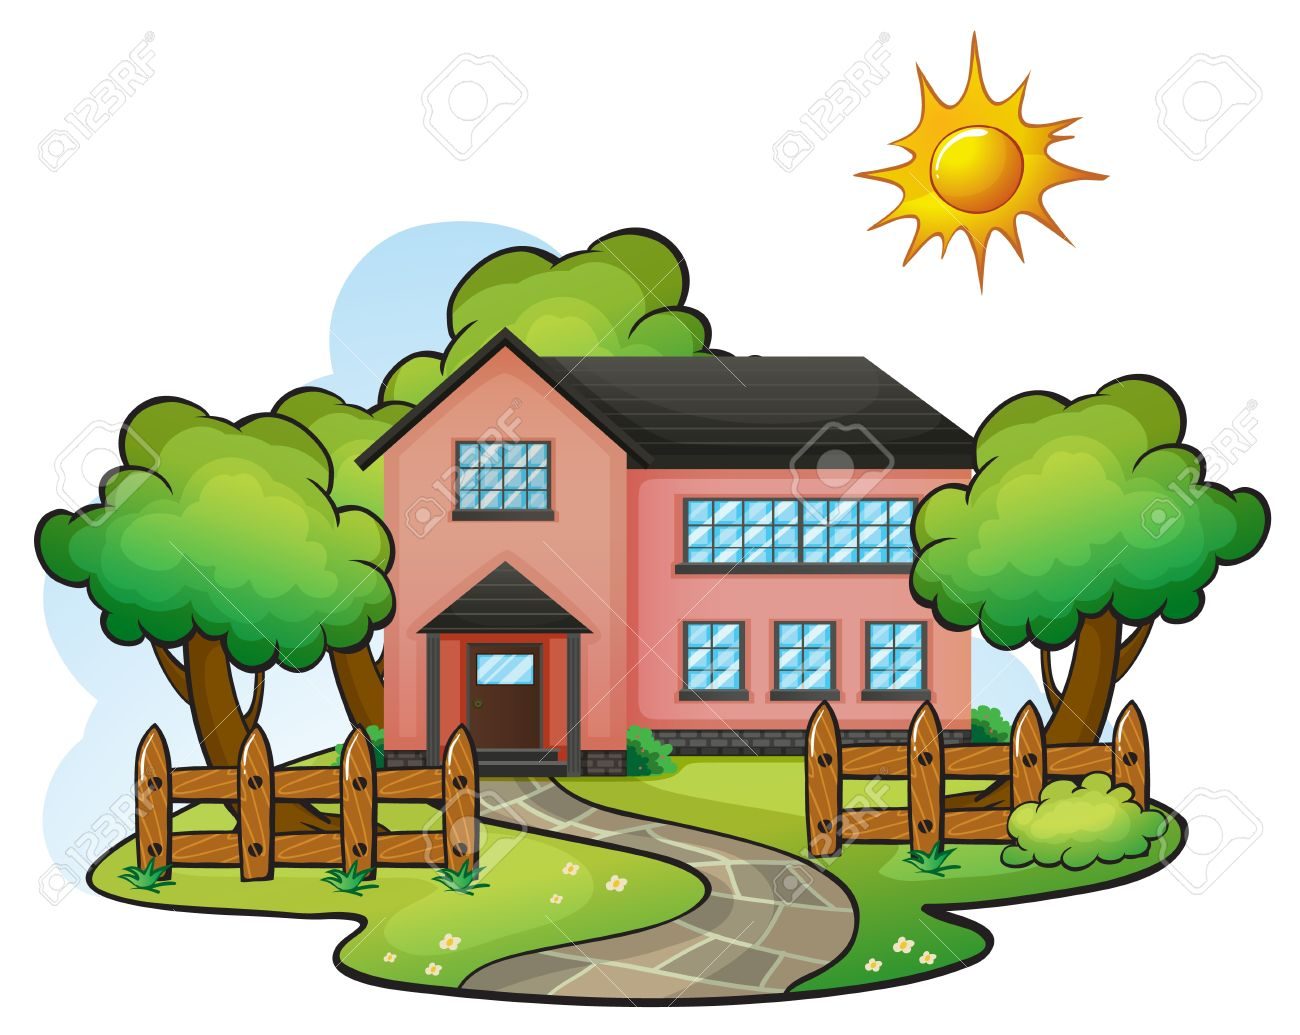 Hosue clipart beautiful house Illustration 1300x1035 clipart 141KB scenery